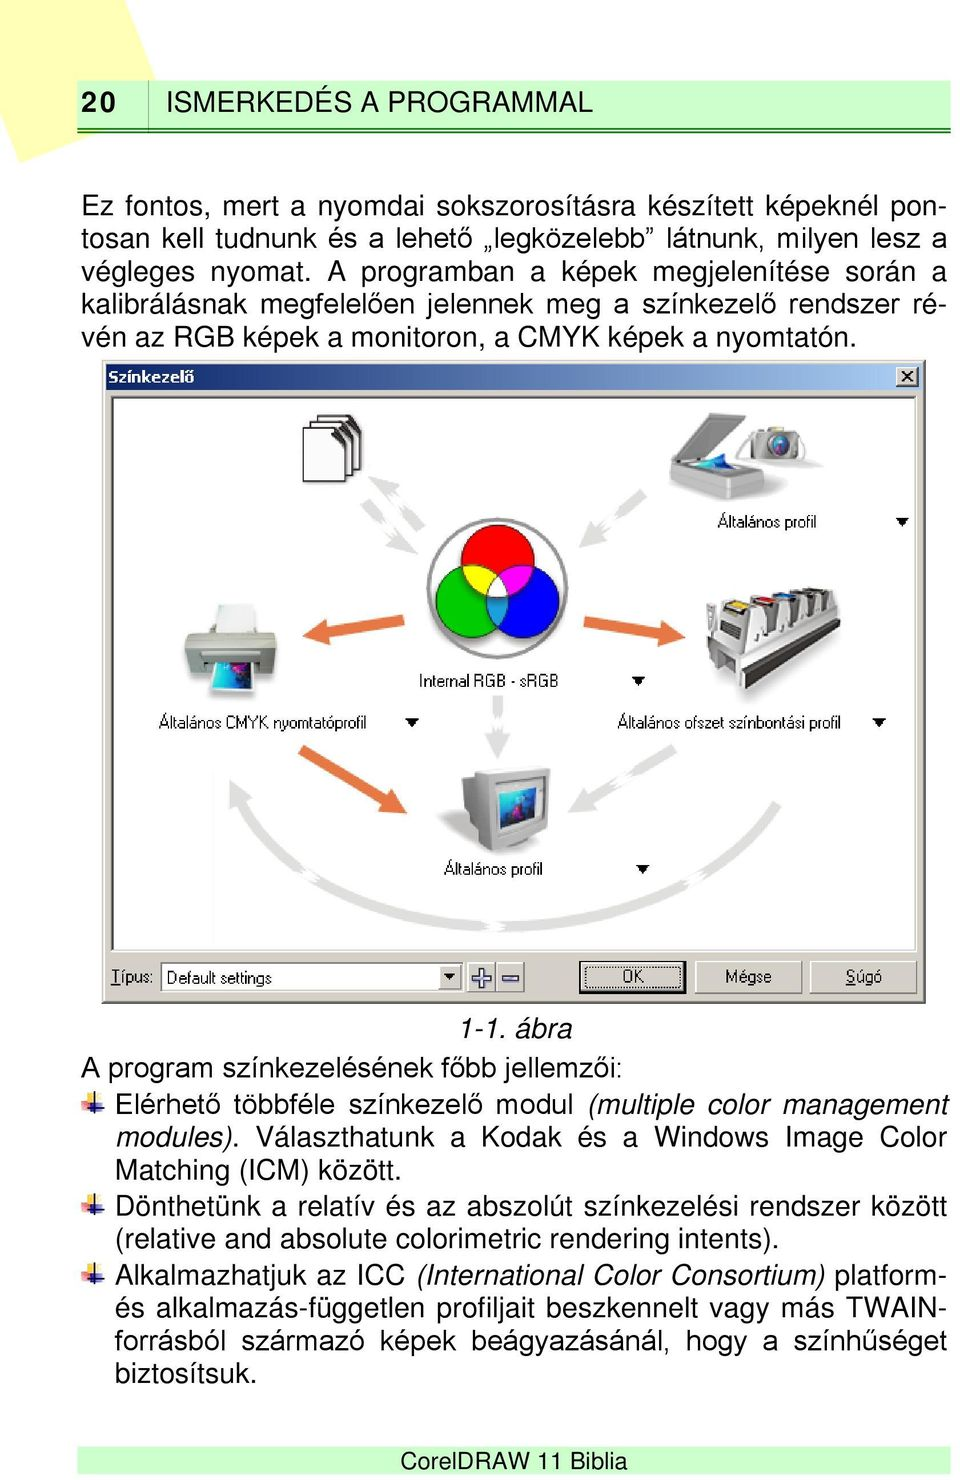 ábra A program színkezelésének főbb jellemzői: Elérhető többféle színkezelő modul (multiple color management modules). Választhatunk a Kodak és a Windows Image Color Matching (ICM) között.